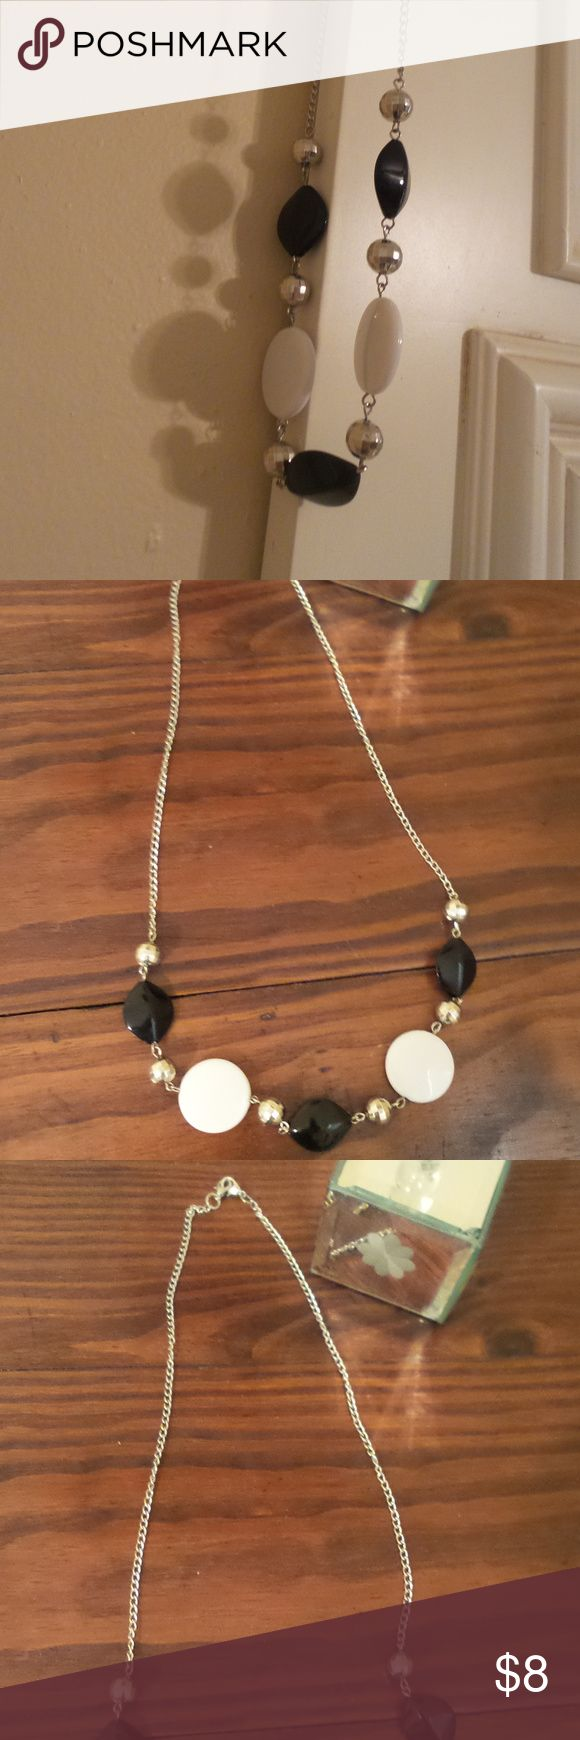 Mid-length beaded chain necklace . Beaded chained necklace Jewelry Necklaces